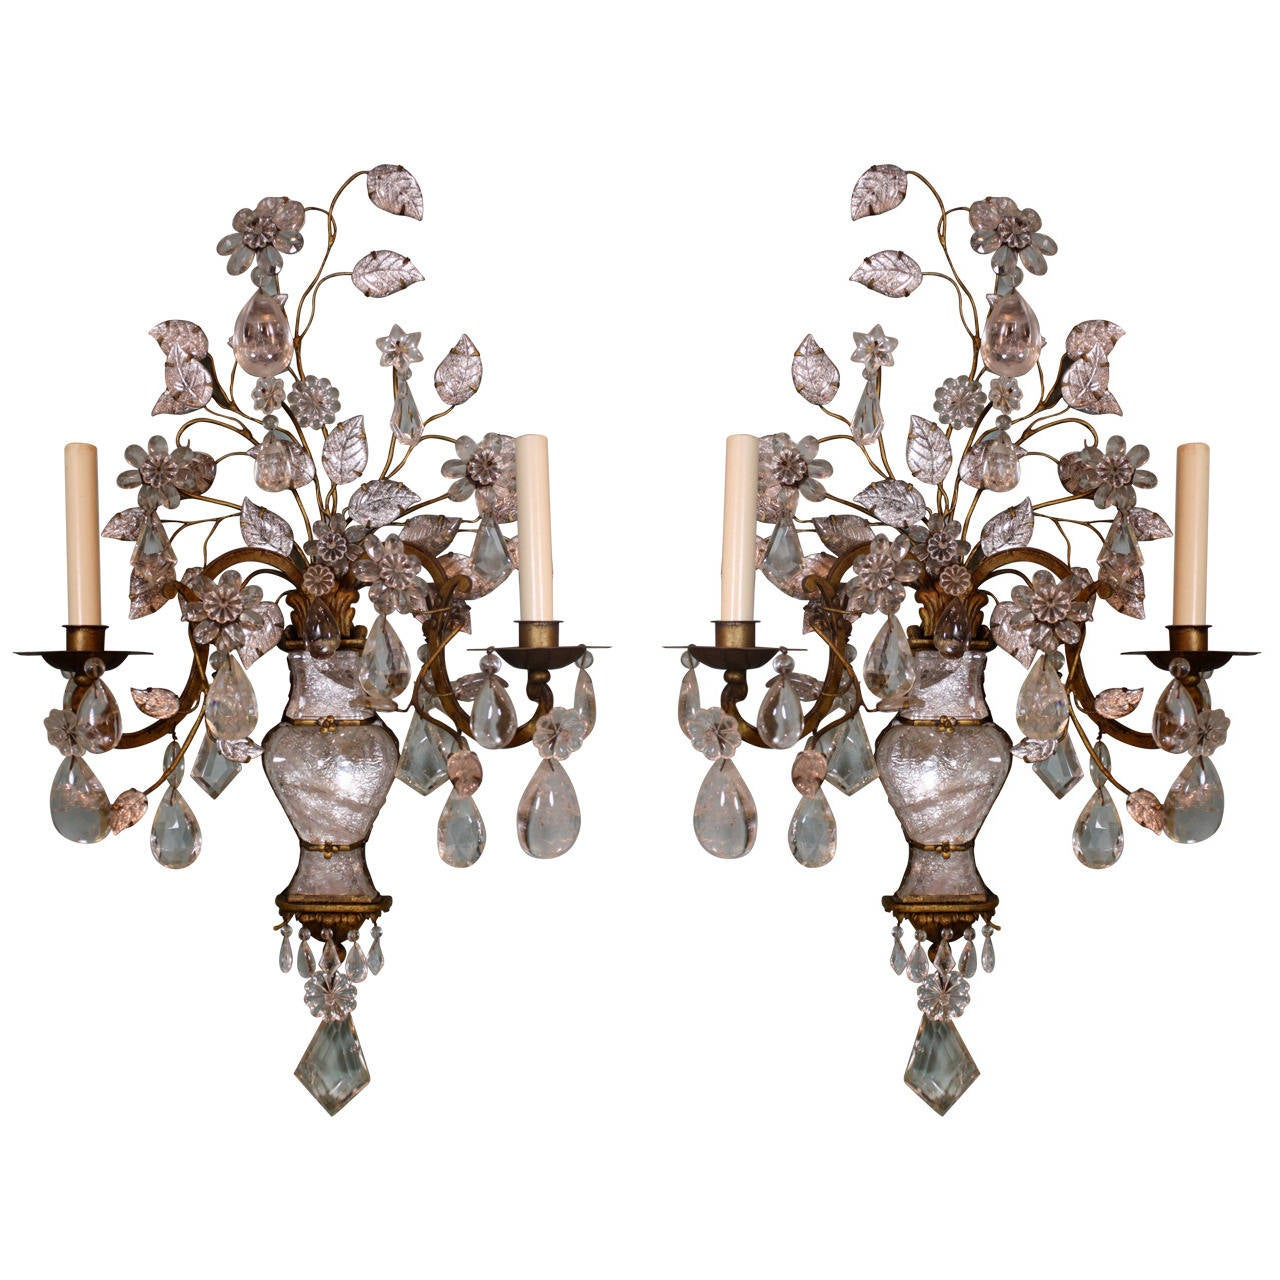 Spectacular Pair of Maison Baguès Rock Crystal Sconces